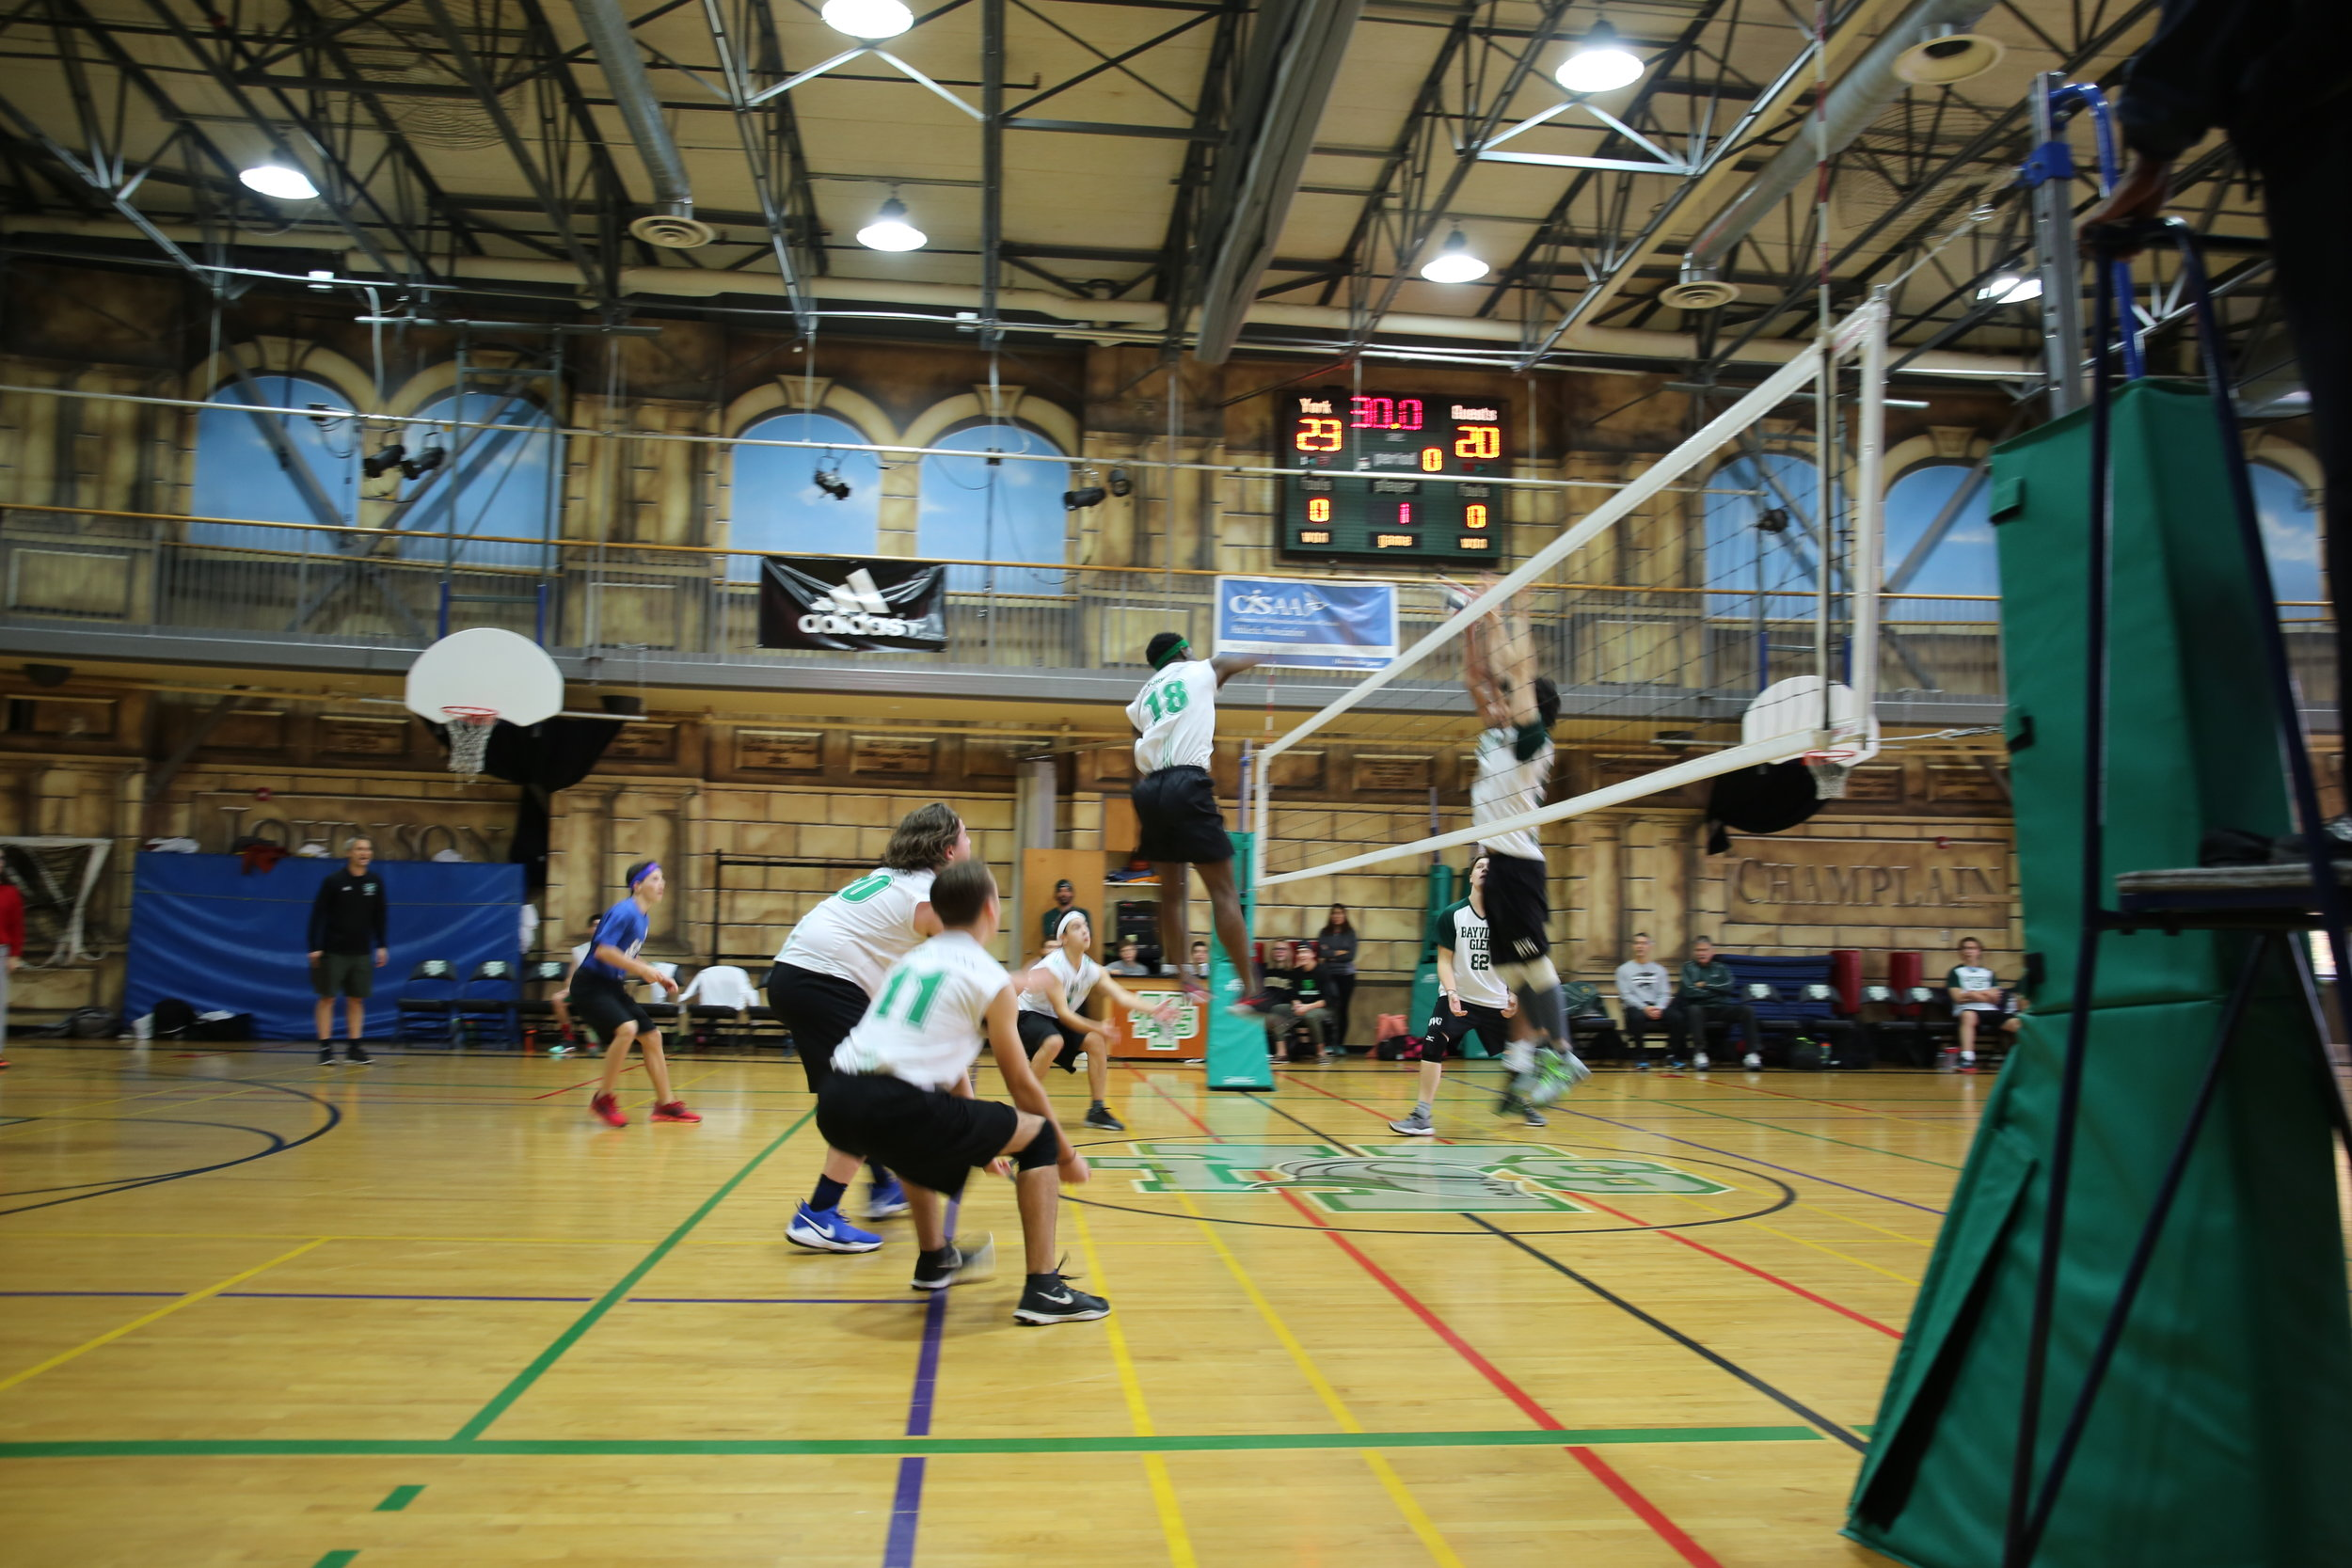 Our Varsity Boys Volleyball team in action!